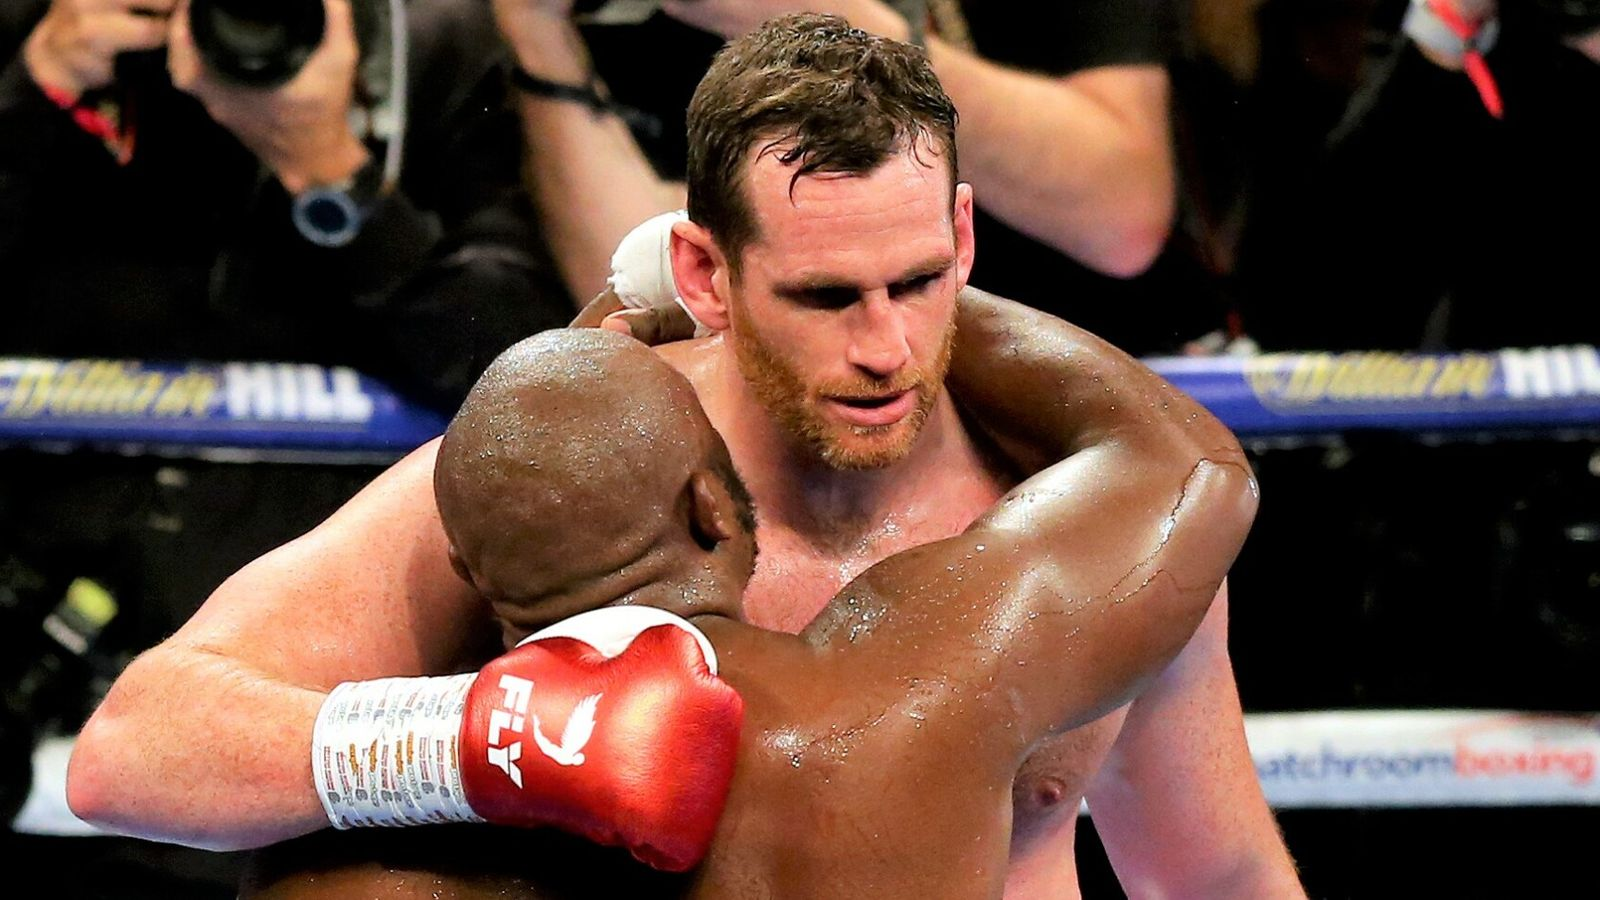 David Prince retires from boxing.